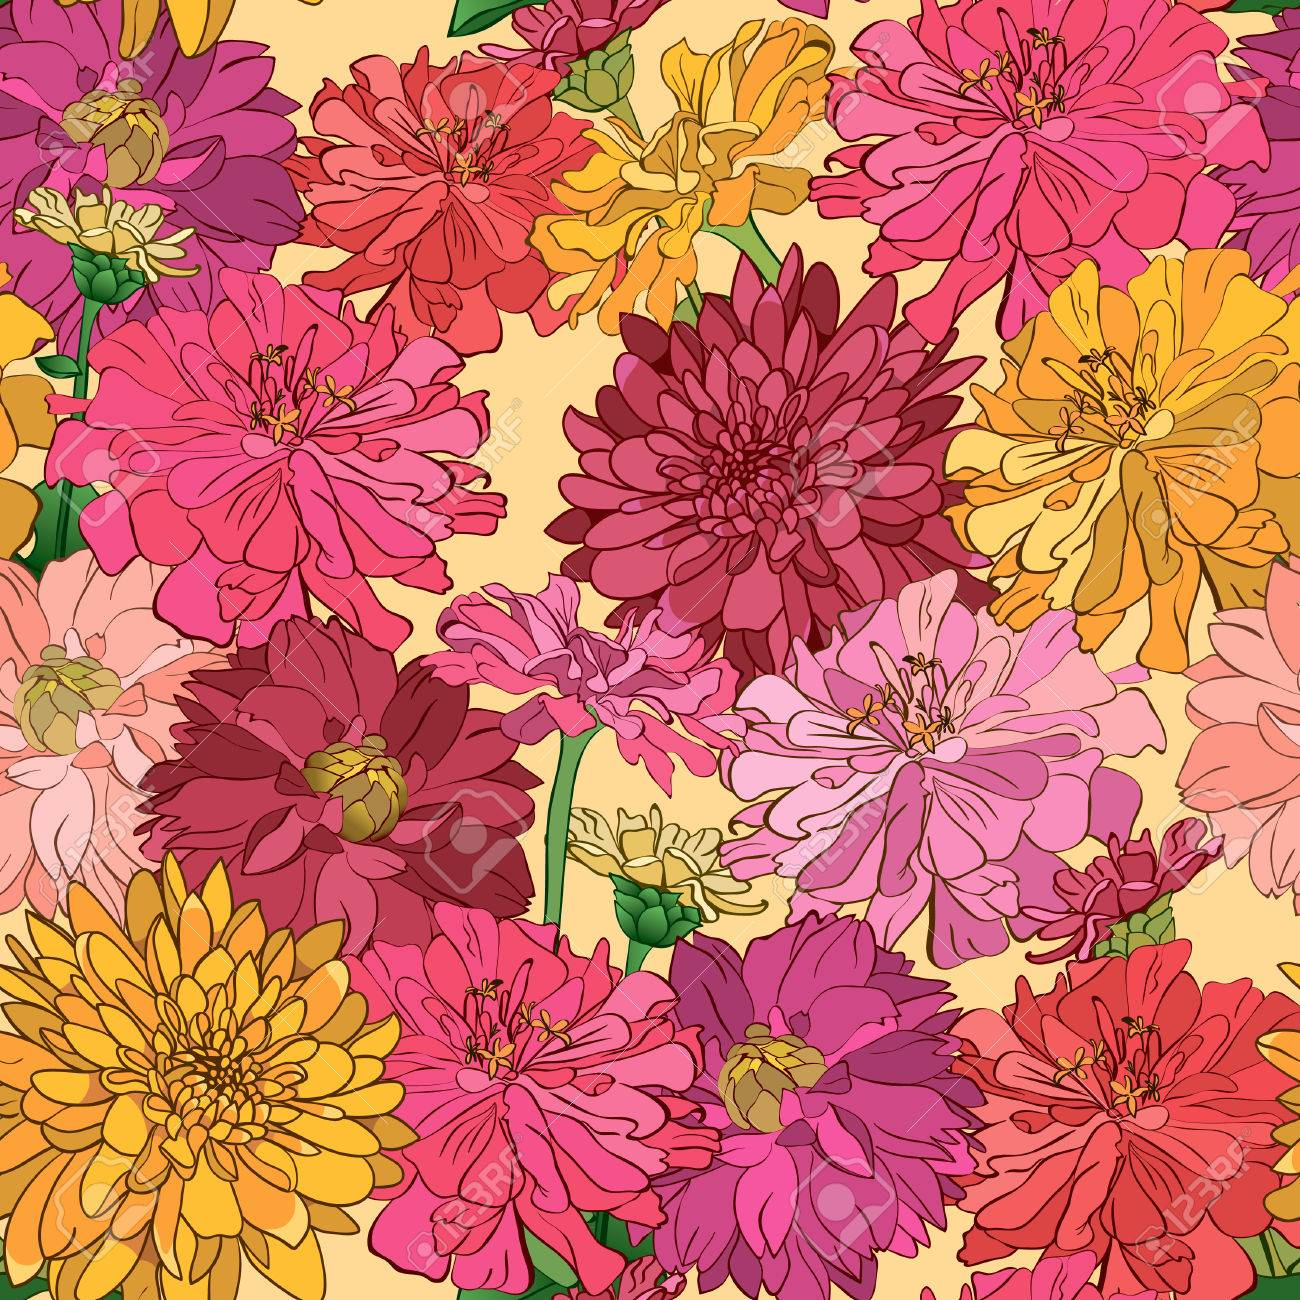 Seamless Floral Wallpaper With Hand Drawn Flowers Brightly Colored Royalty Free Cliparts Vectors And Stock Illustration Image 30029803